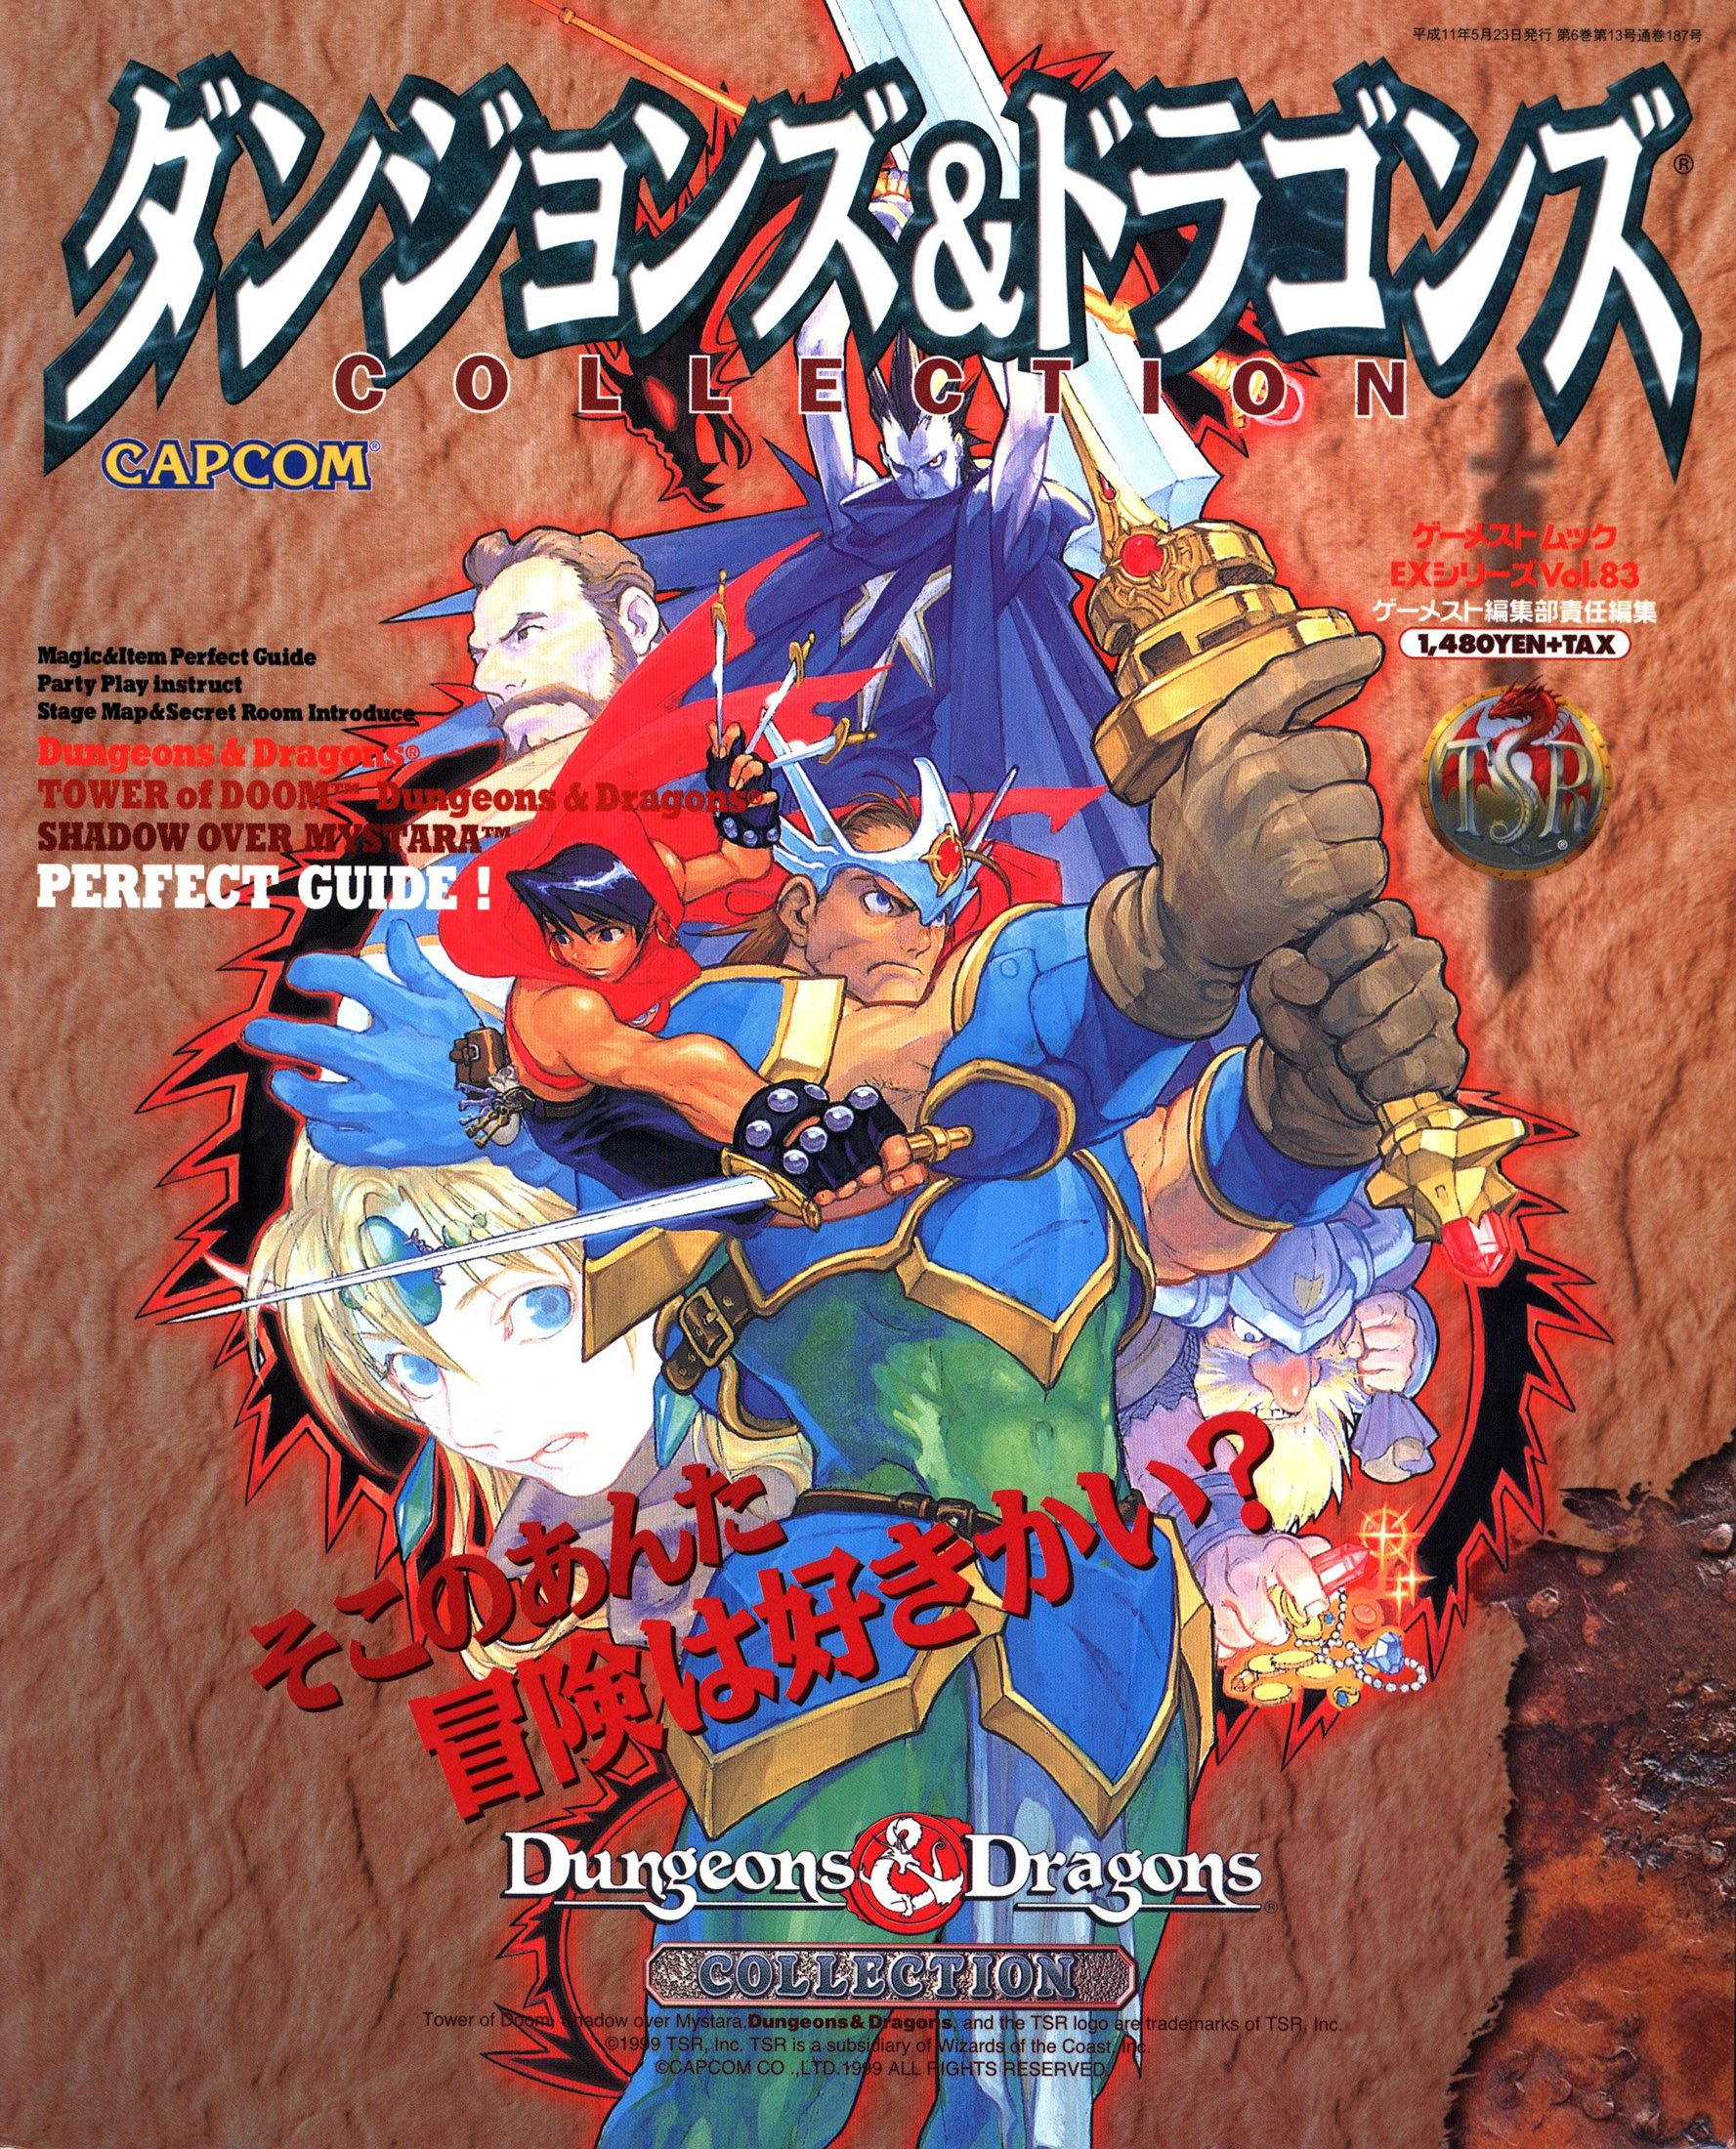 Dungeons & Dragons Collection (Gamest Mook EX Series Vol.83)